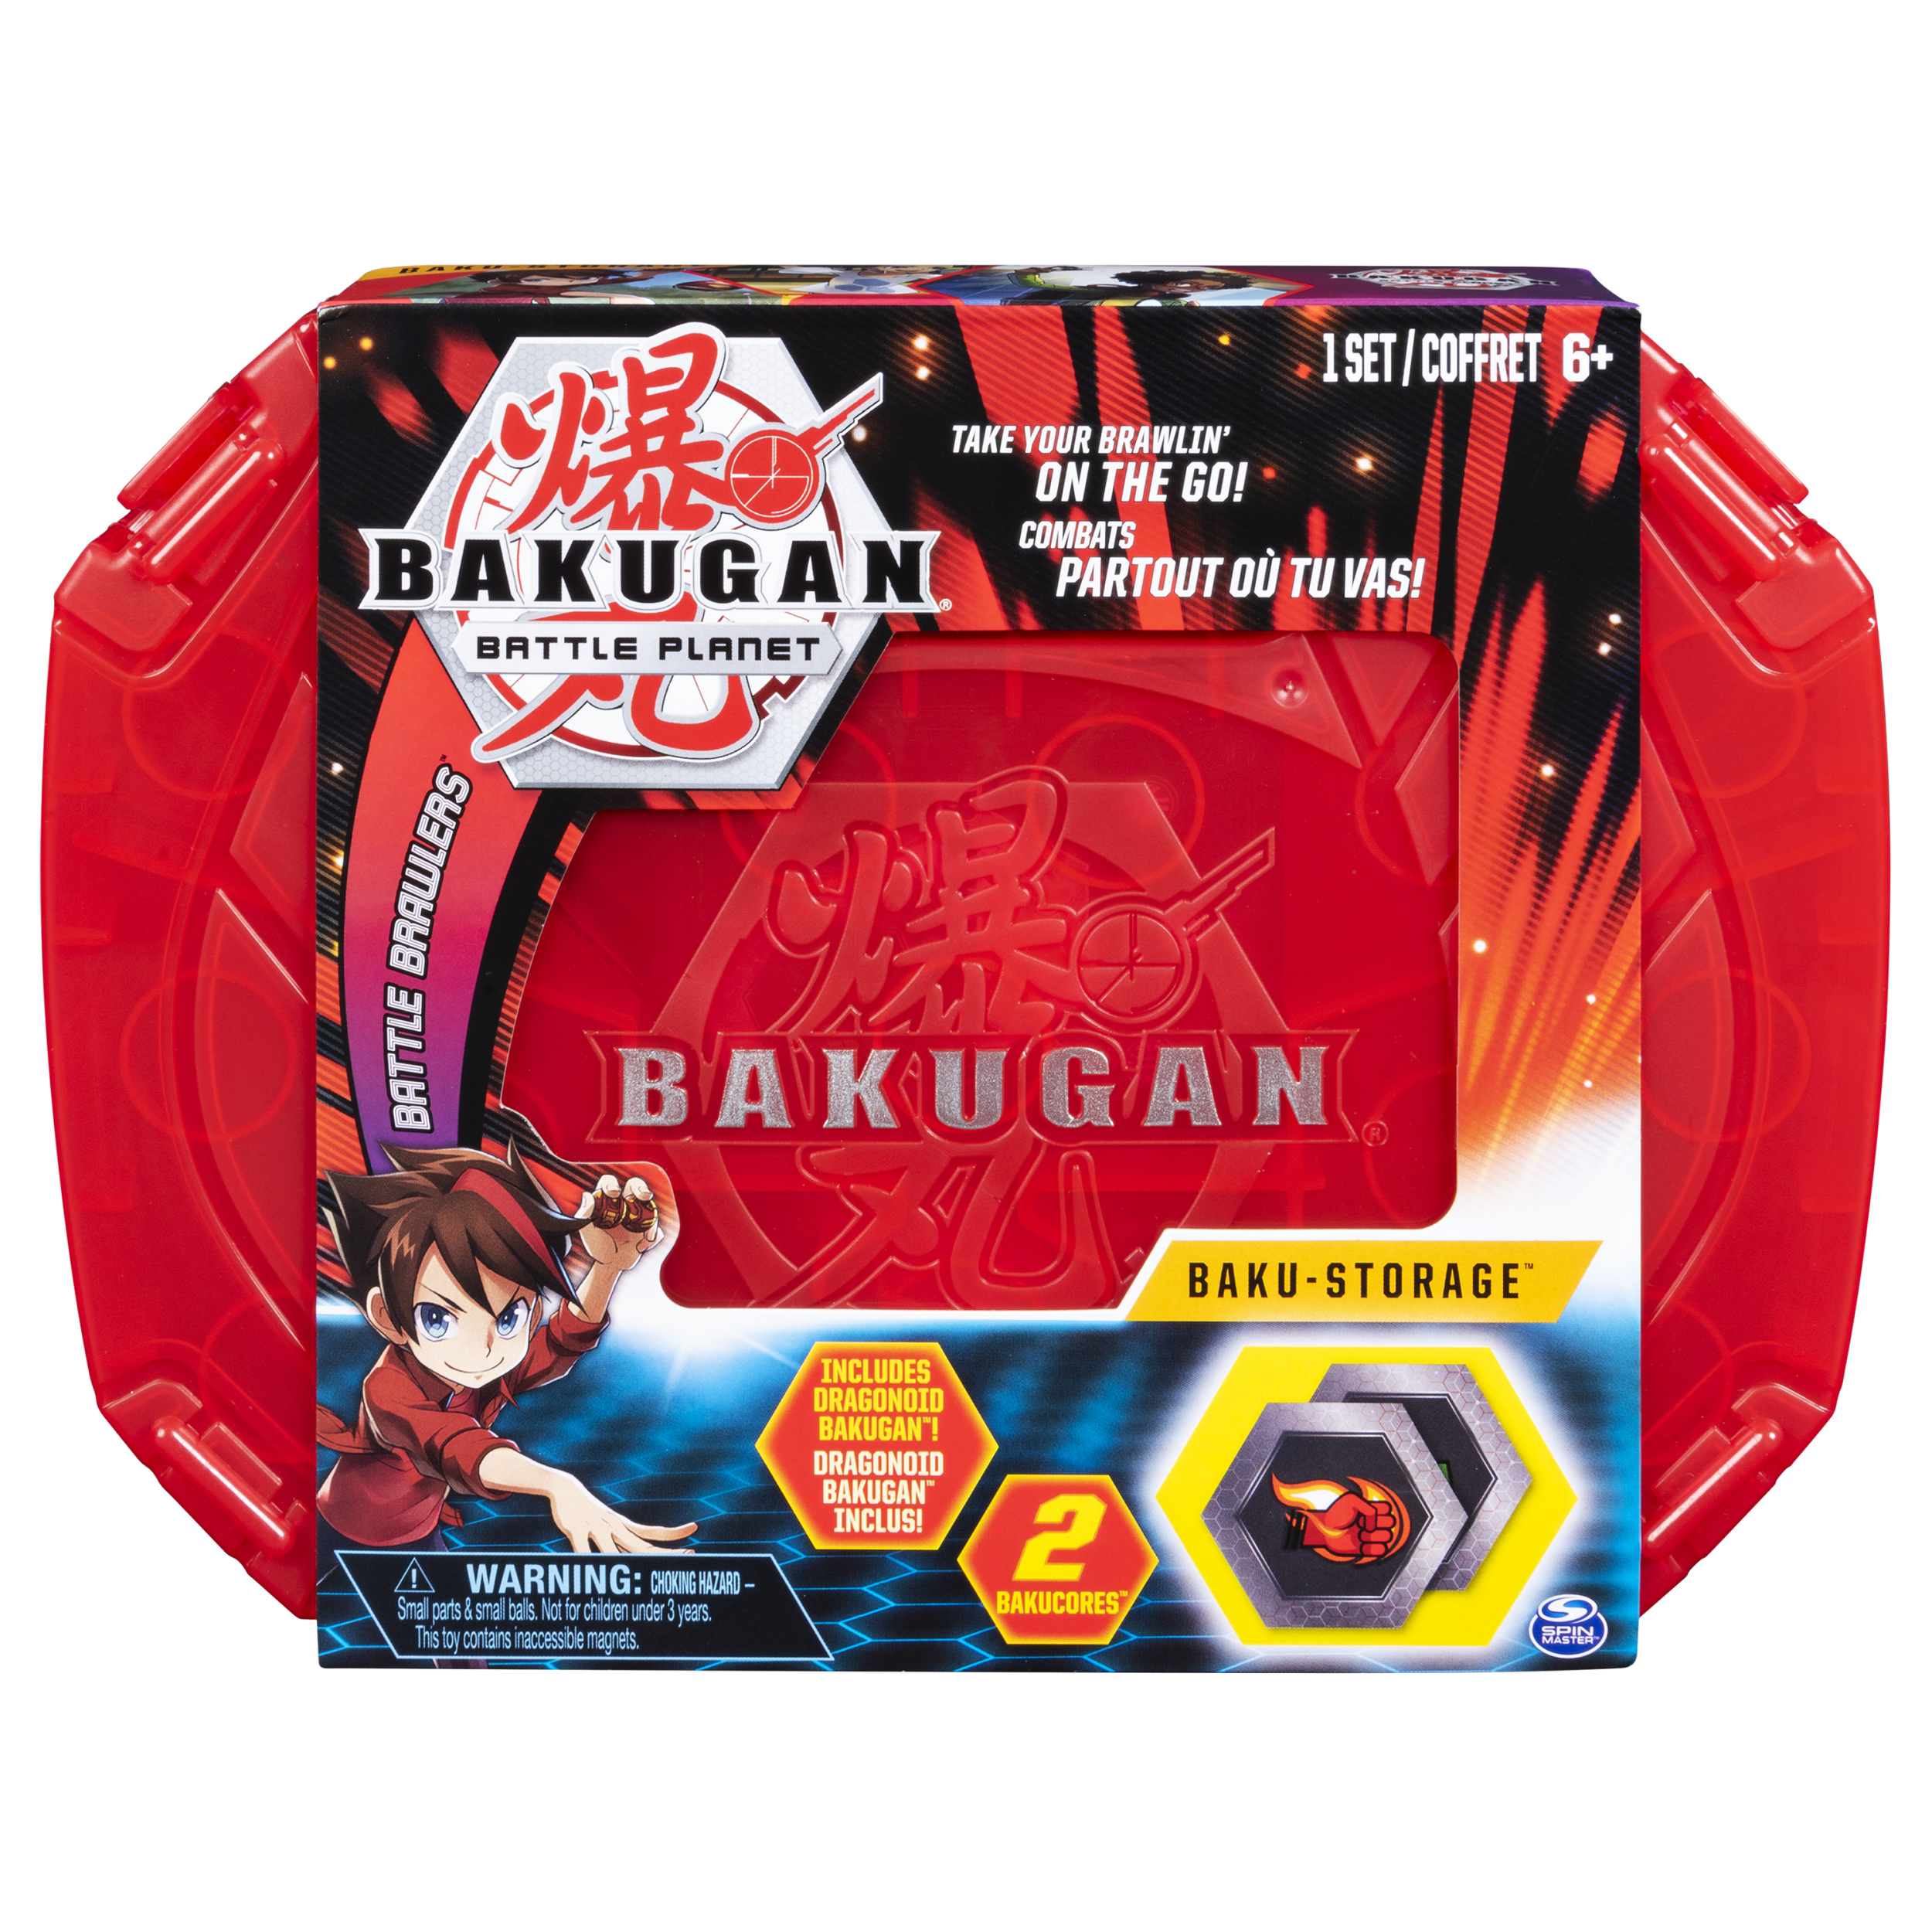 Bakugan, Baku-storage Case (Red) for Bakugan Collectible Creatures, for Ages 6 and Up